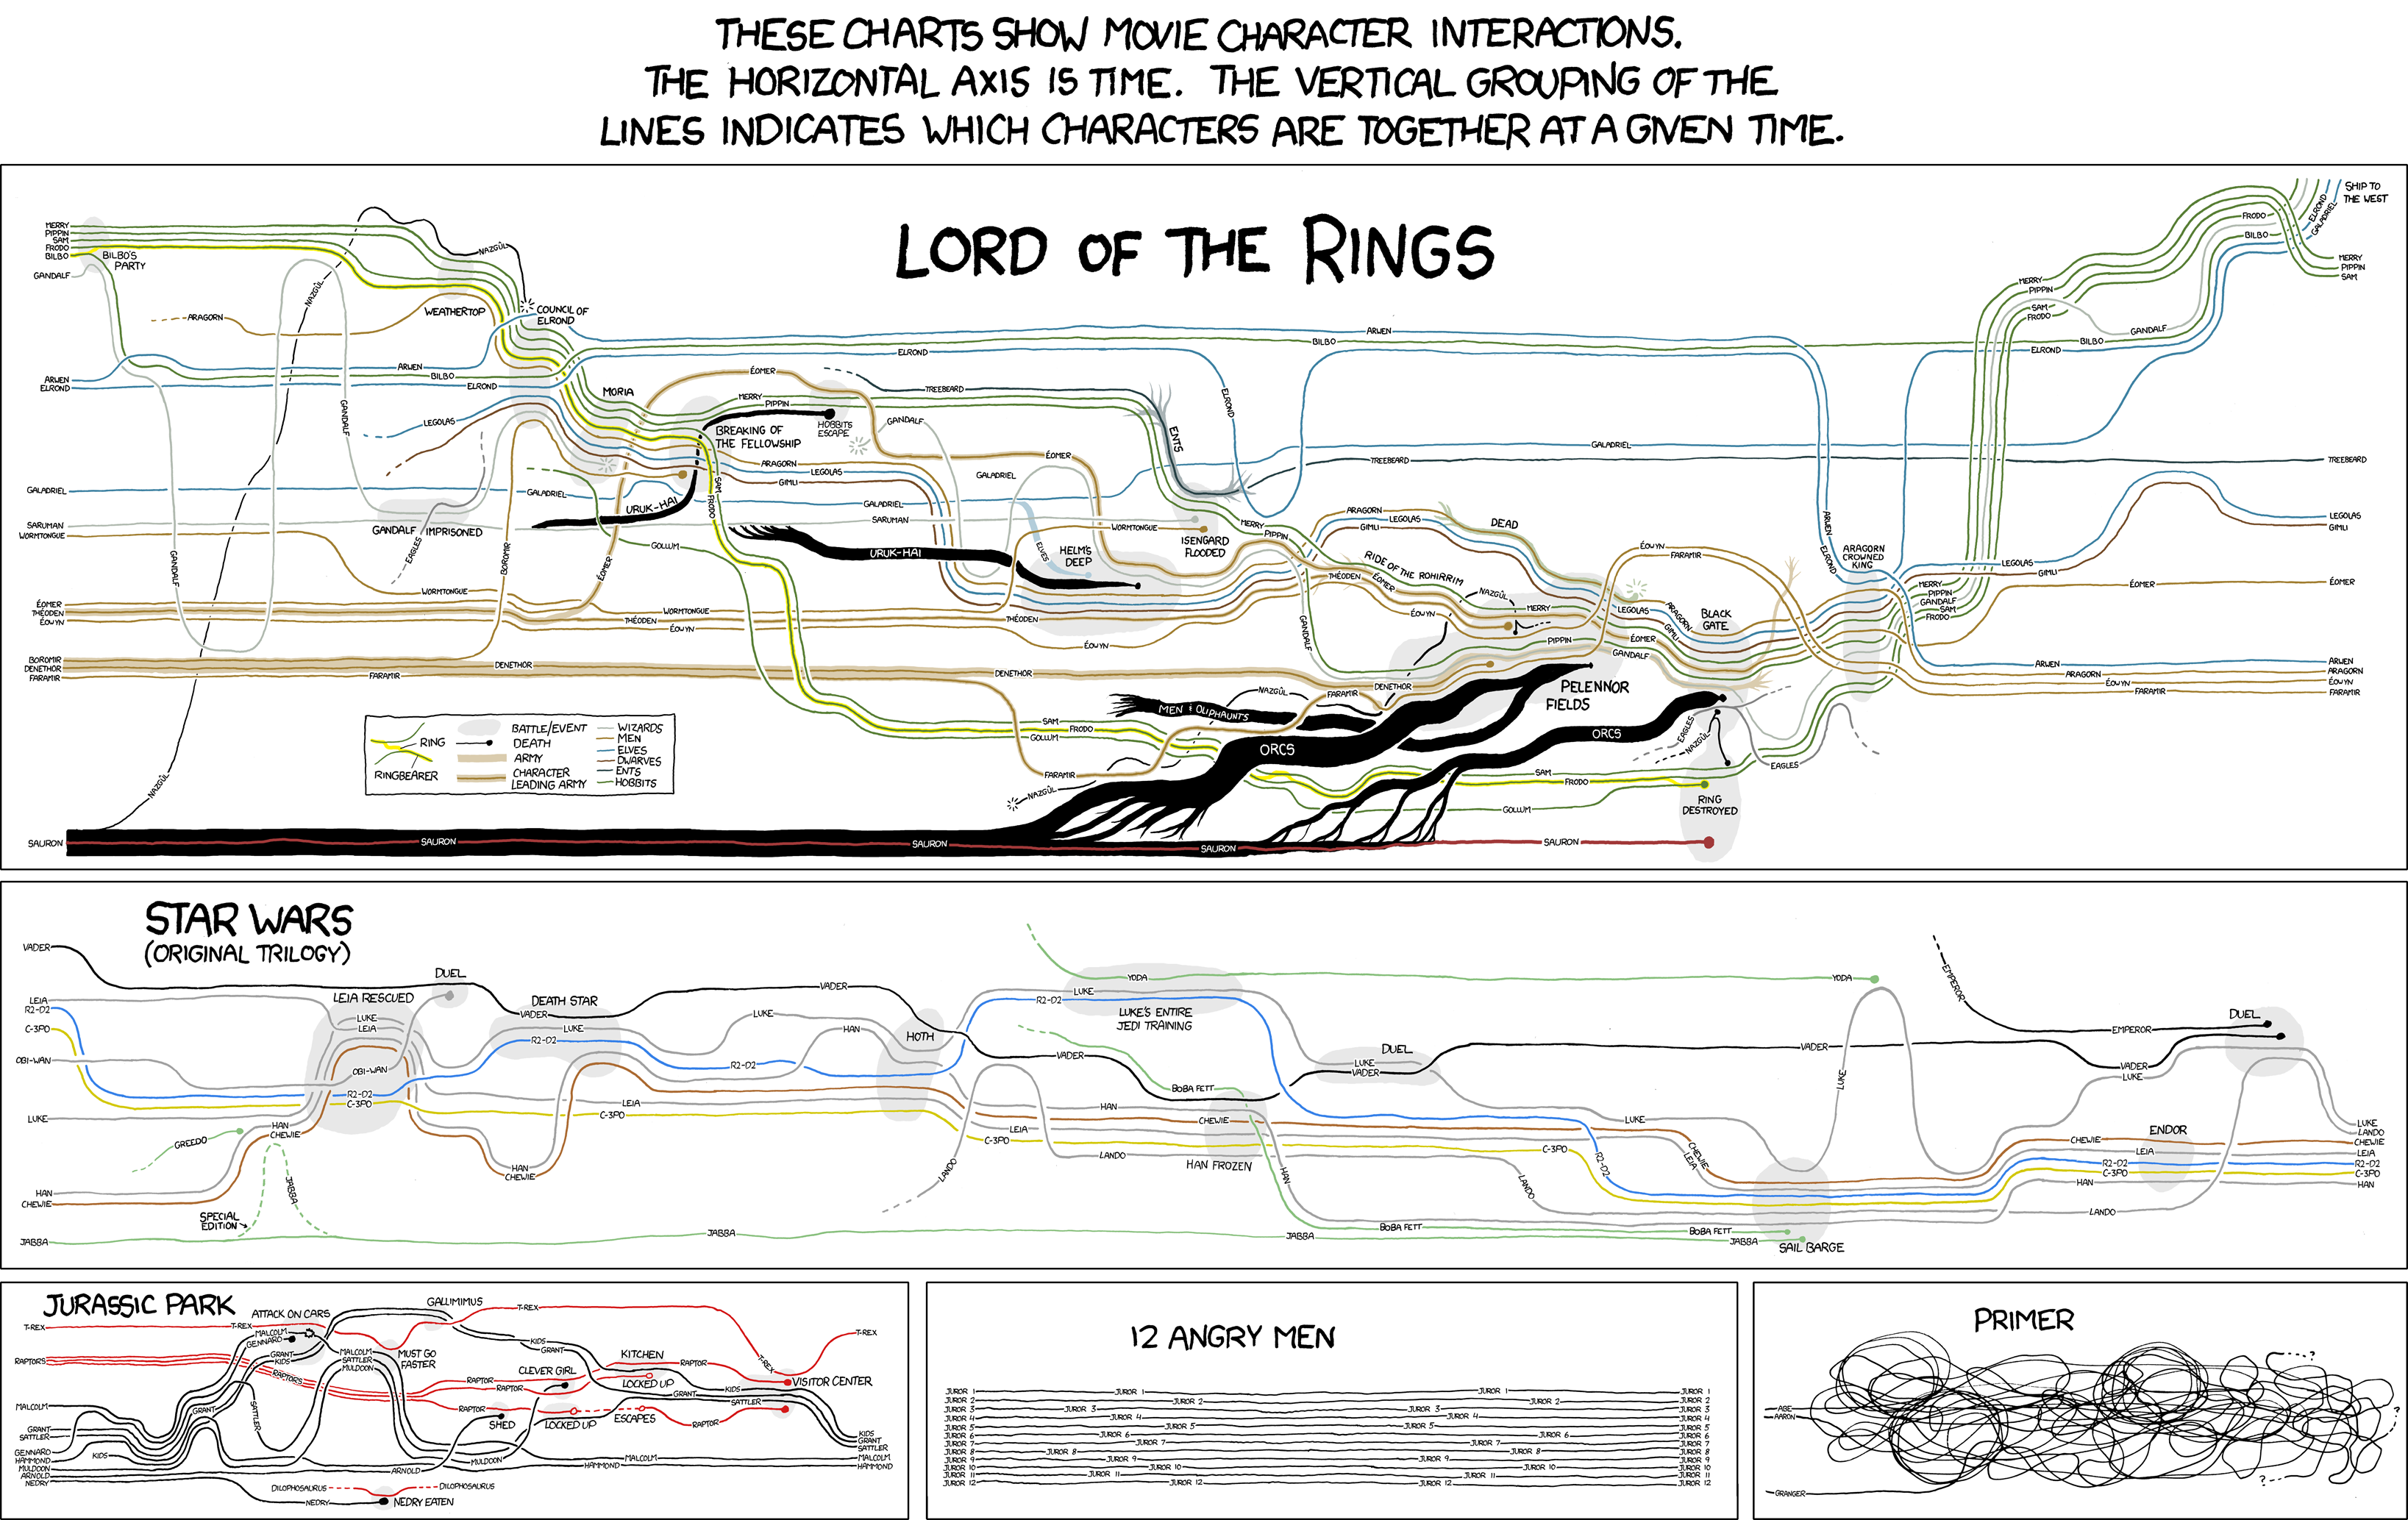 http://imgs.xkcd.com/comics/movie_narrative_charts_large.png